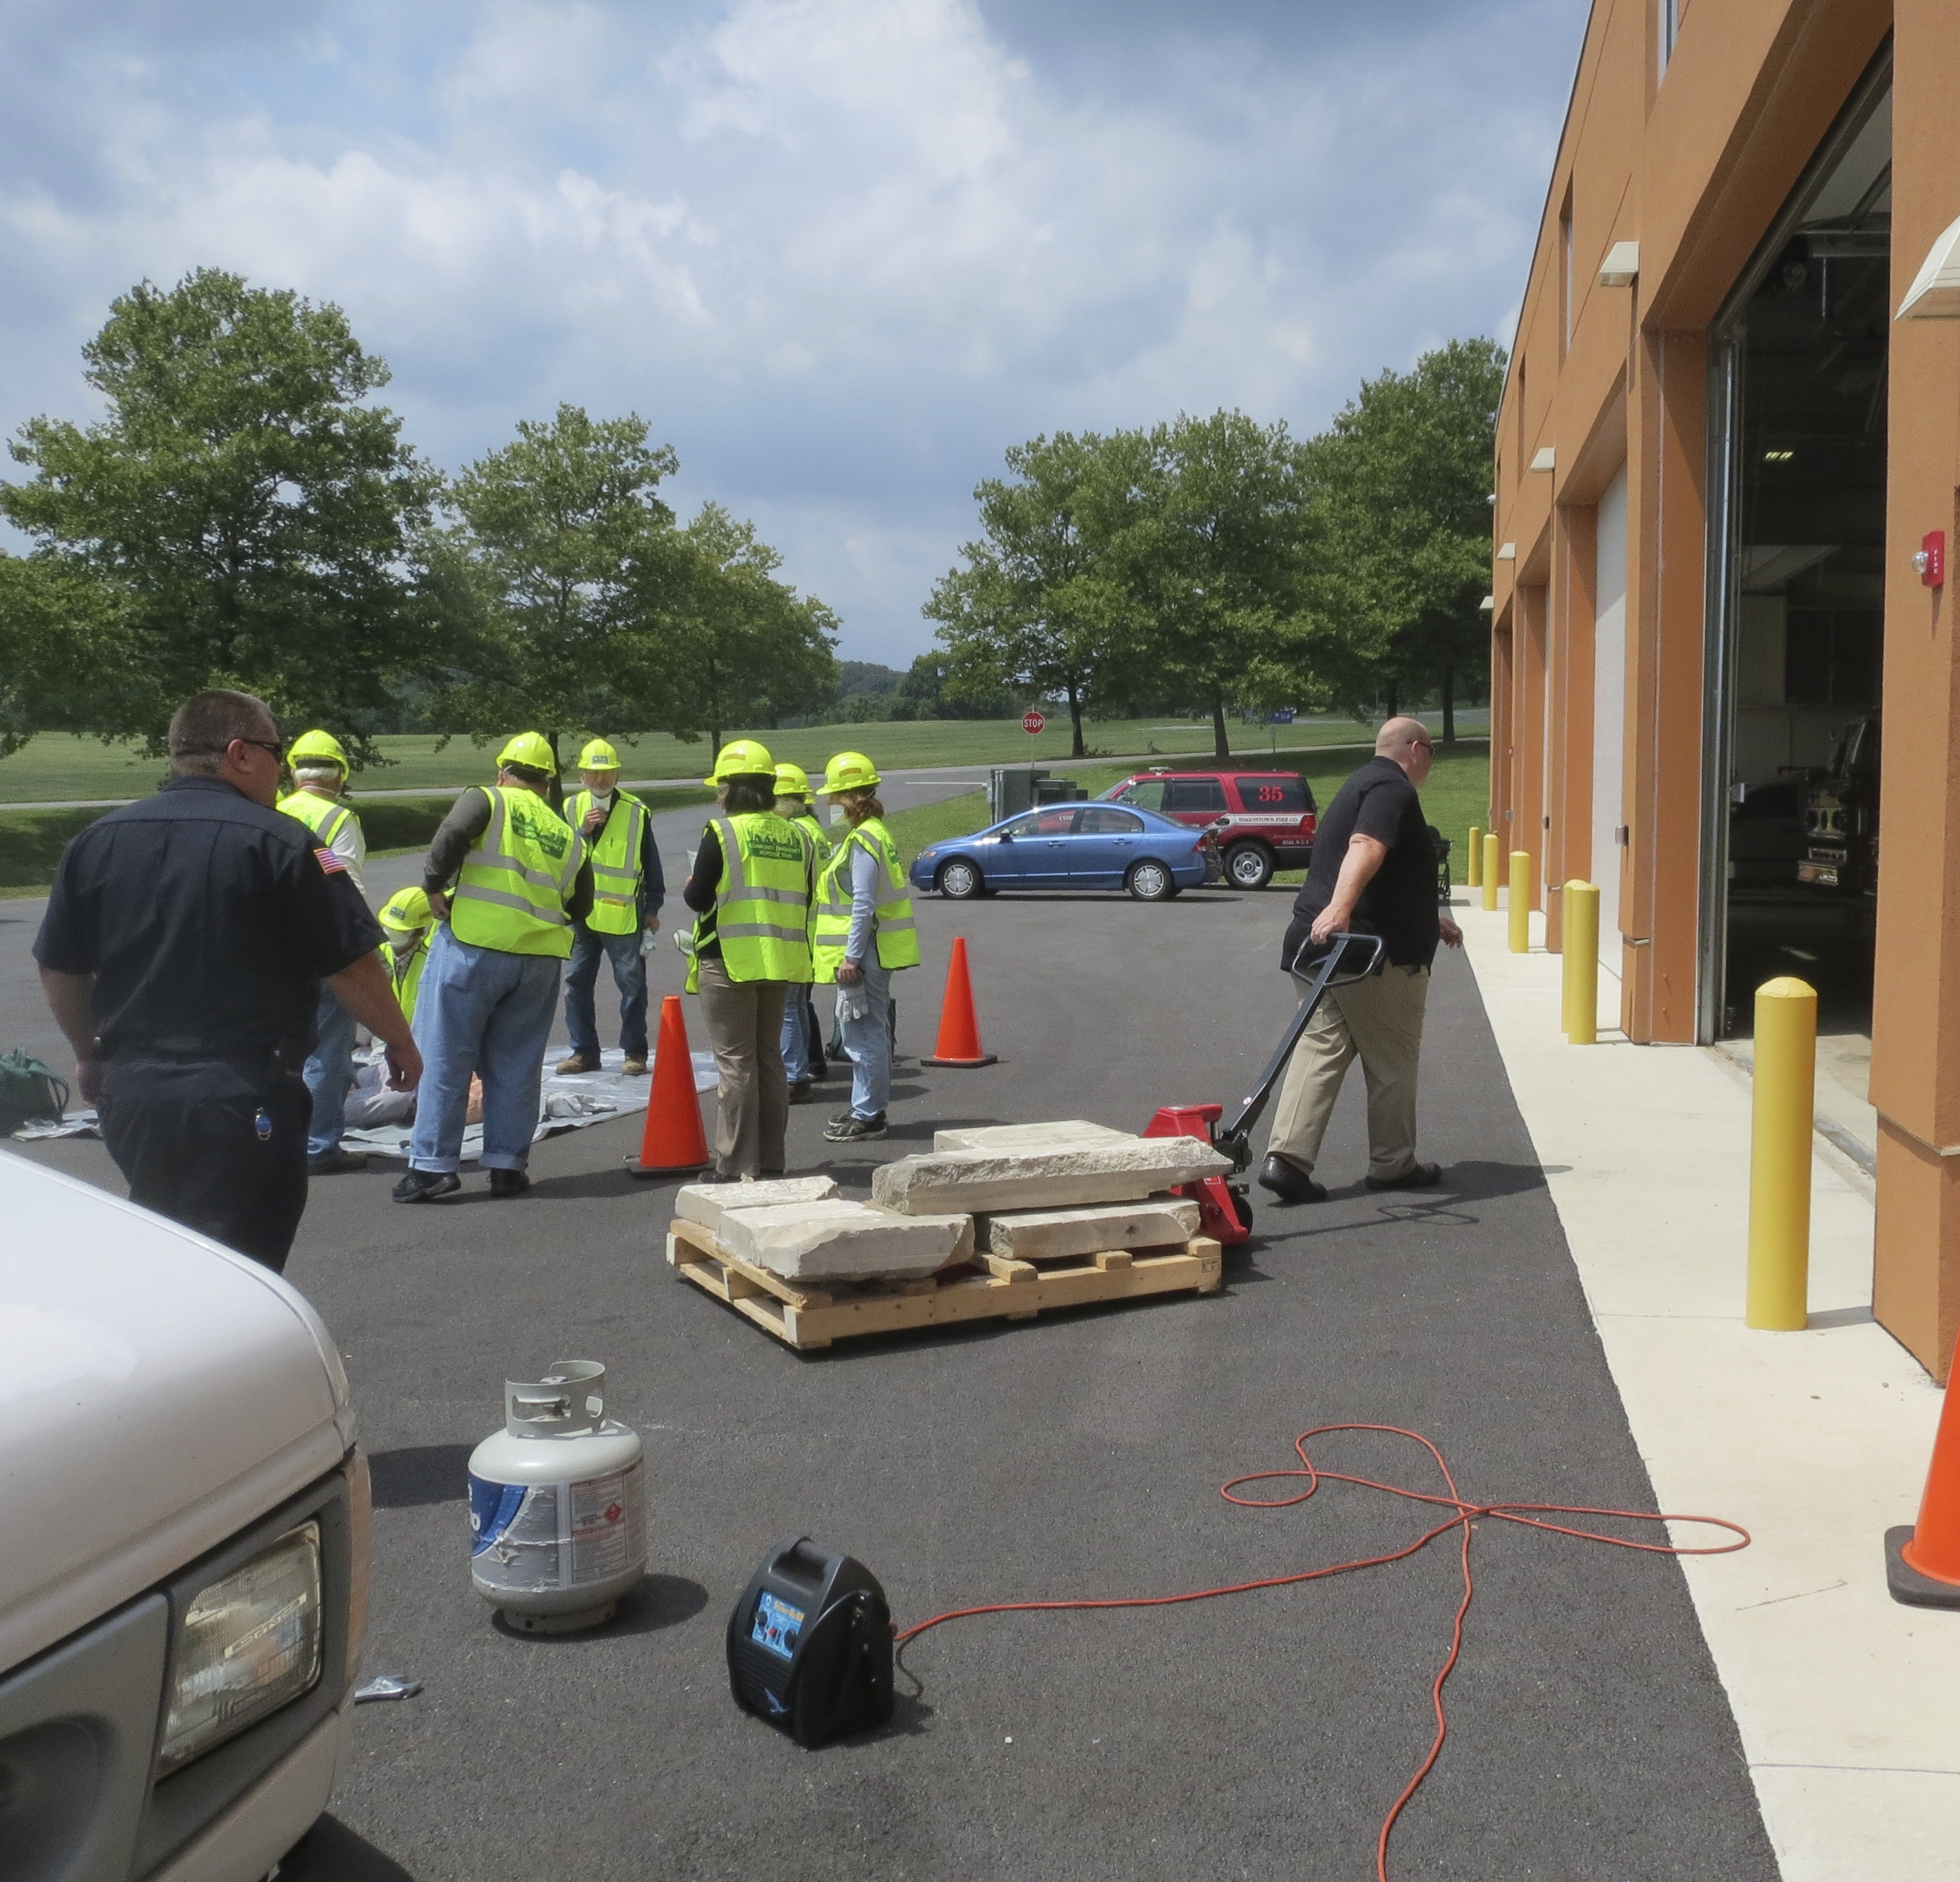 During the last CERT course, the Chester County Public Training Center was a hub of activity as emergency services workers went about their business as trainees learned how to rescue someone from a collapsed building.